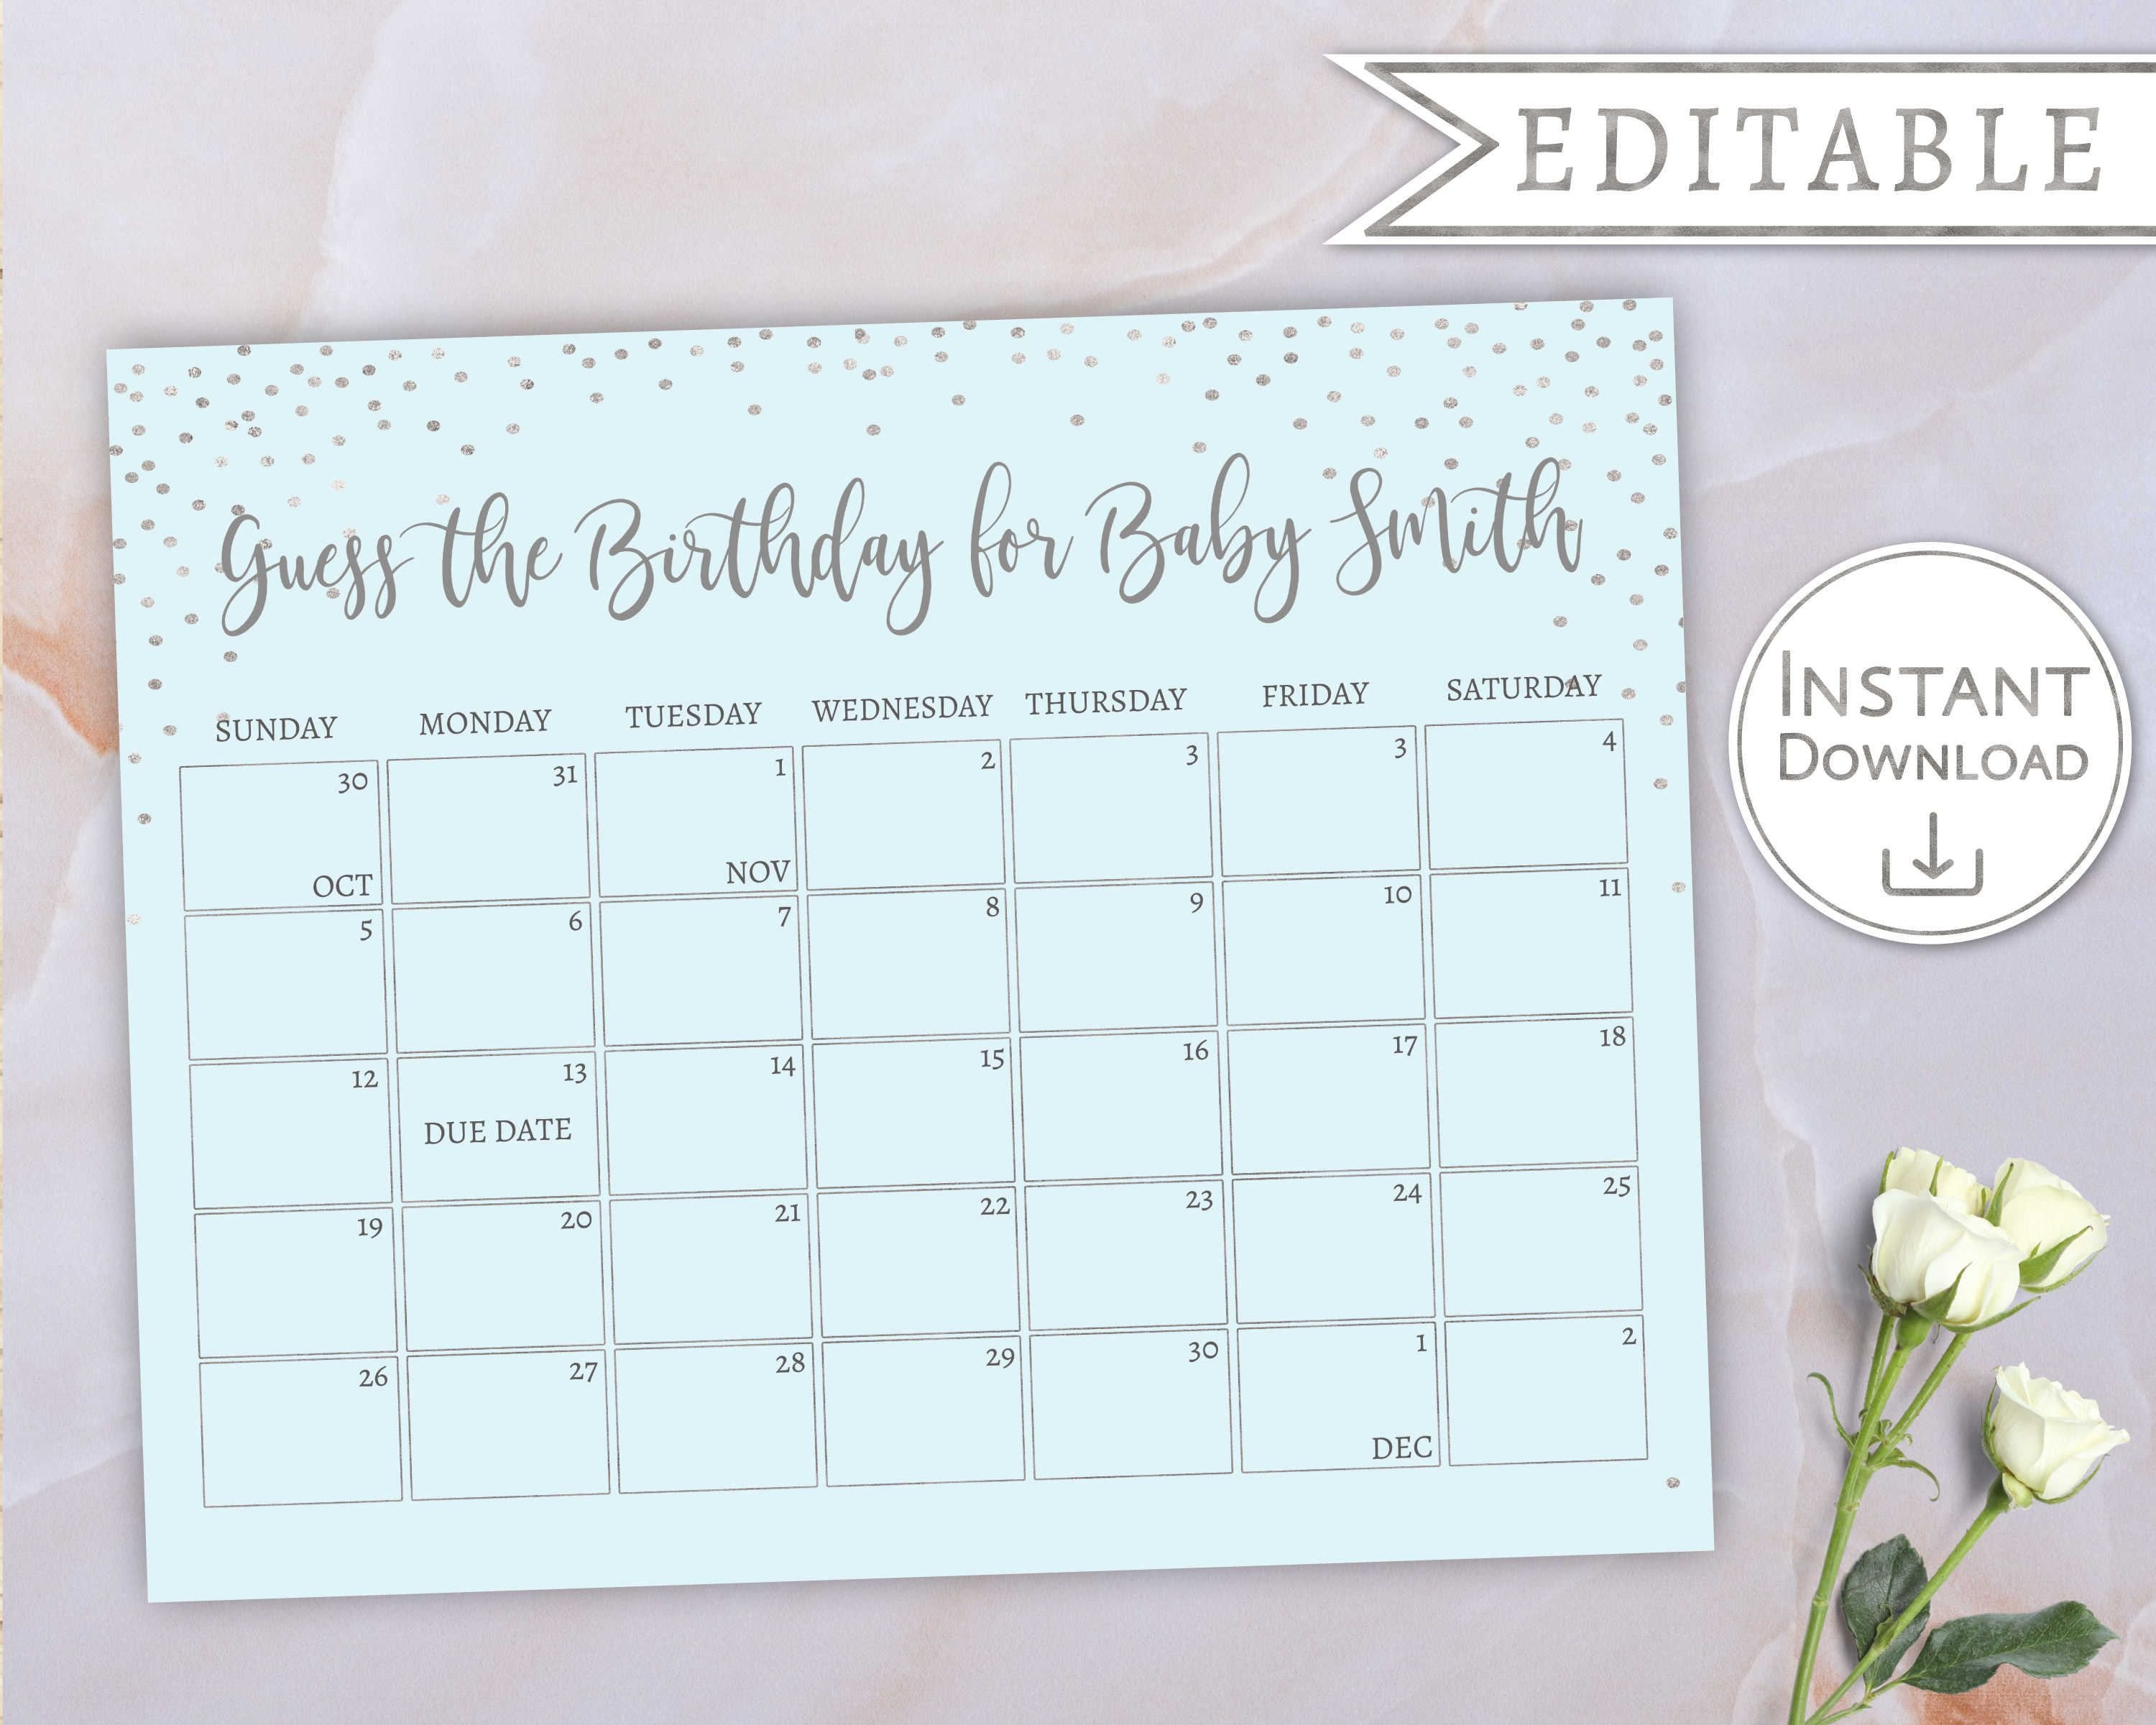 Baby Due Date Calendar, Guess Babys Birthday, Baby Boy Blue Calendar For Guessing Baby Due Date